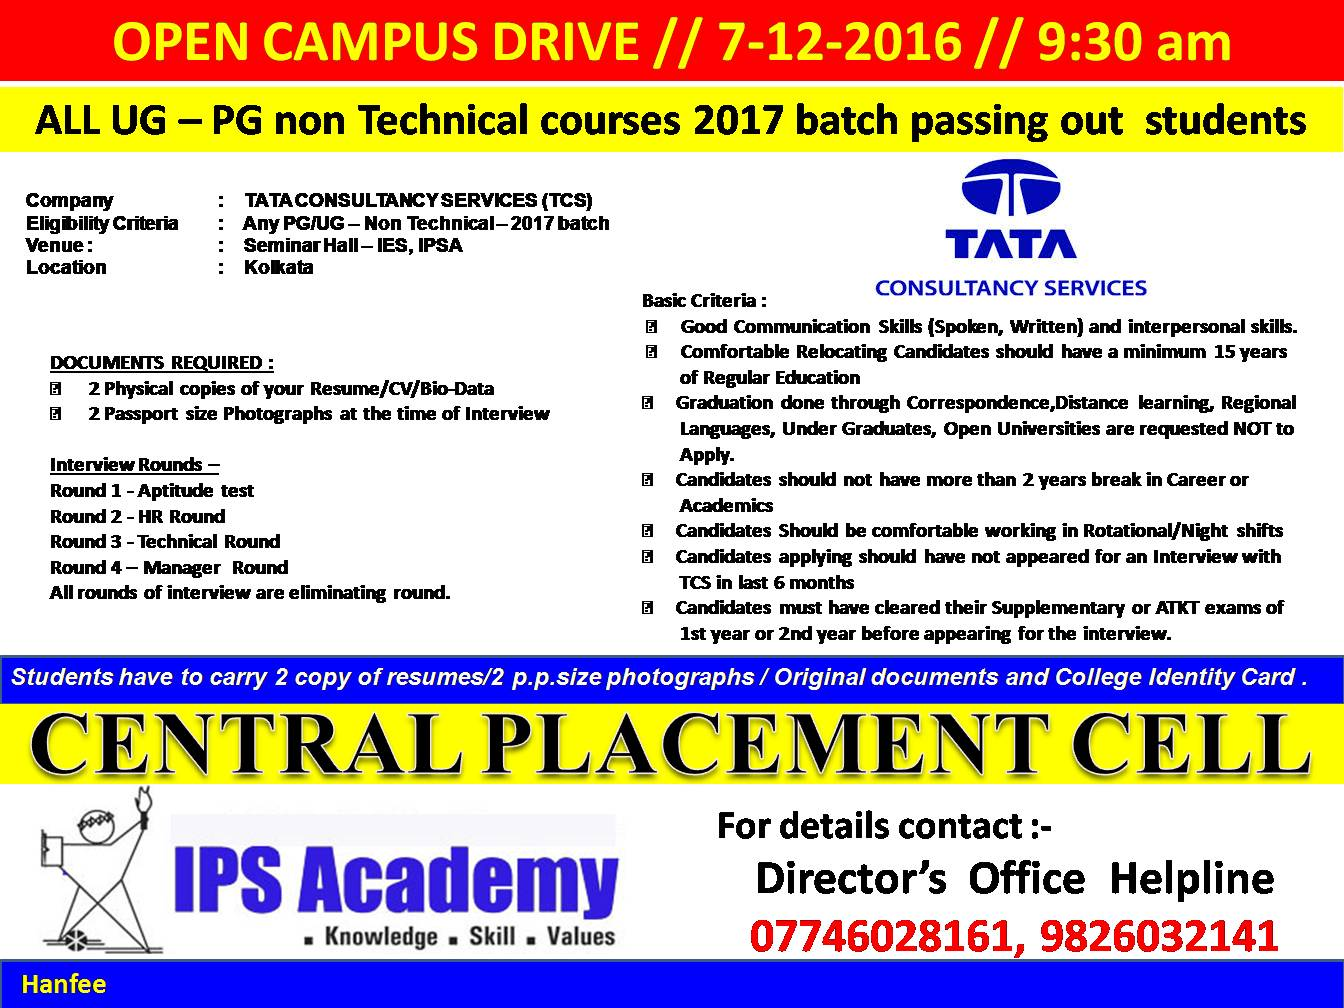 Central Placement Cell: TCS all UG - PG non Technical courses 2017